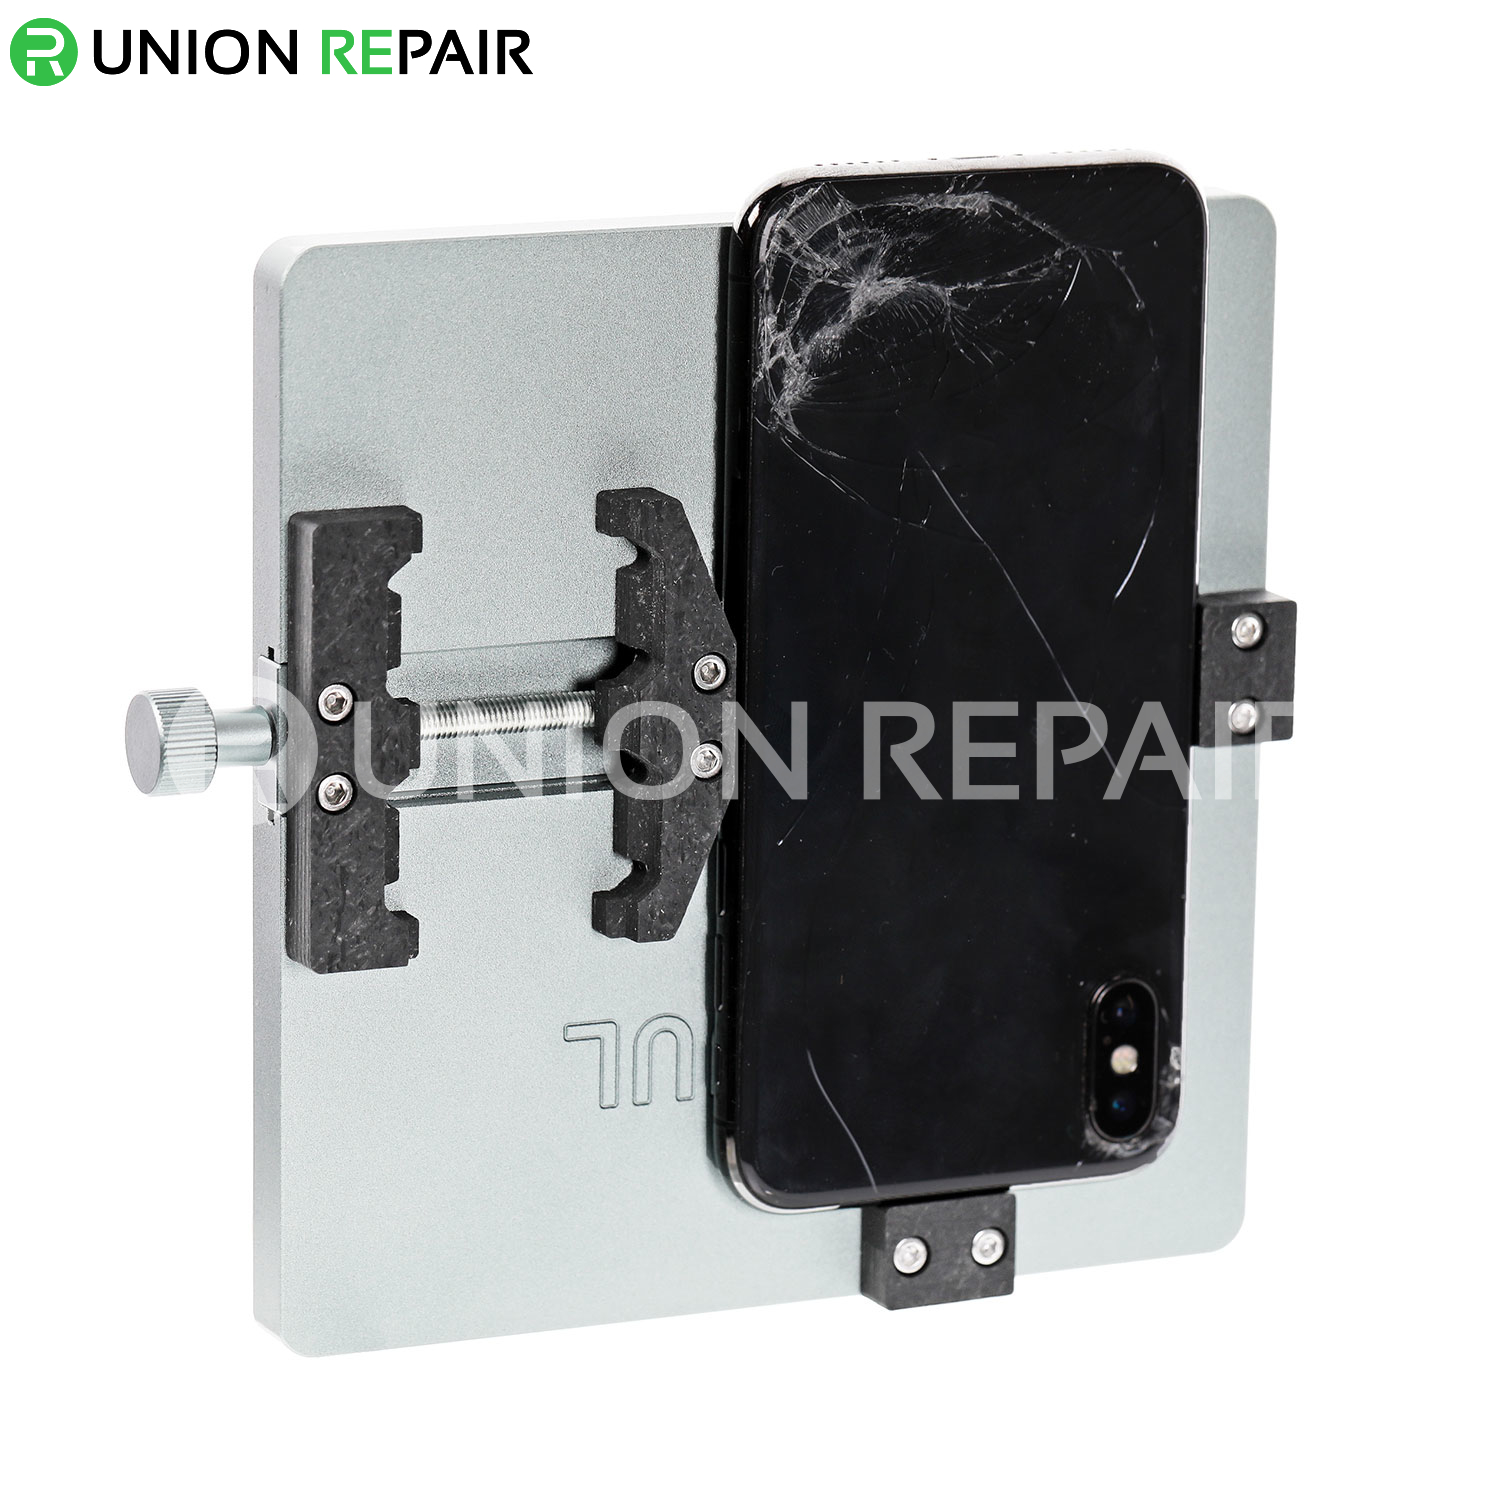 2UUL Repair Jig 3in1 for Back Cover/Apple Watch/Phone Board